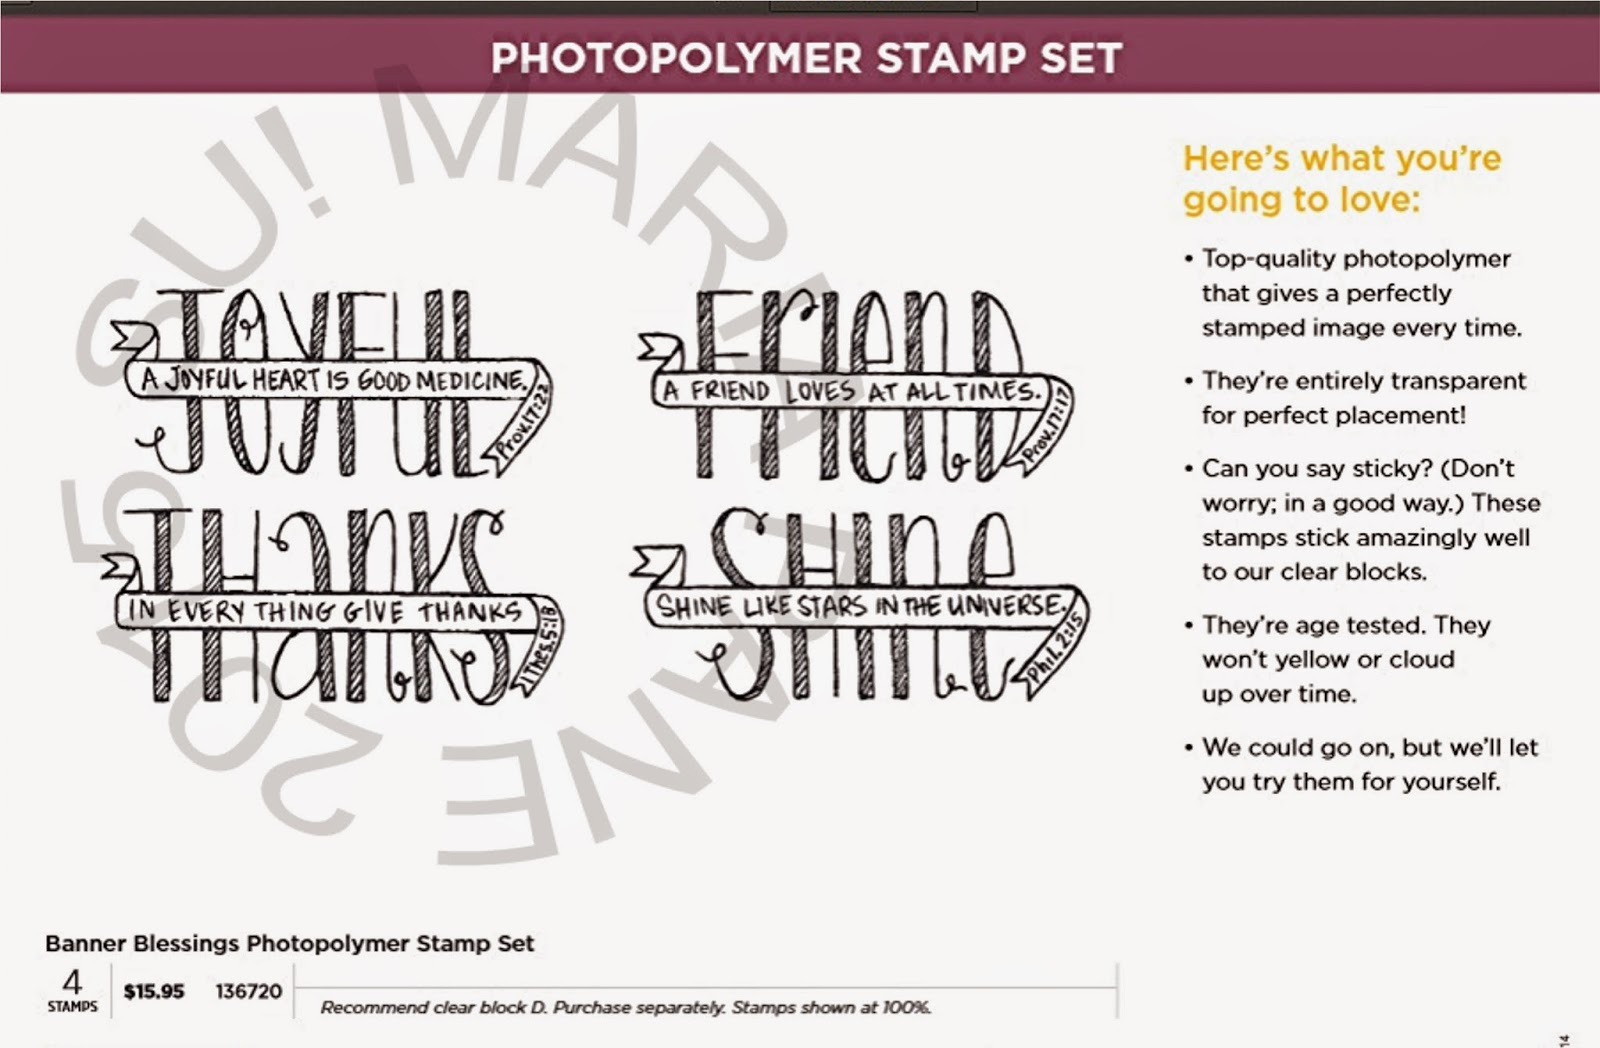 http://www.stampinup.com/us/documents/US_Flyer_photopolymer_Banner_Blessing_1114.pdf